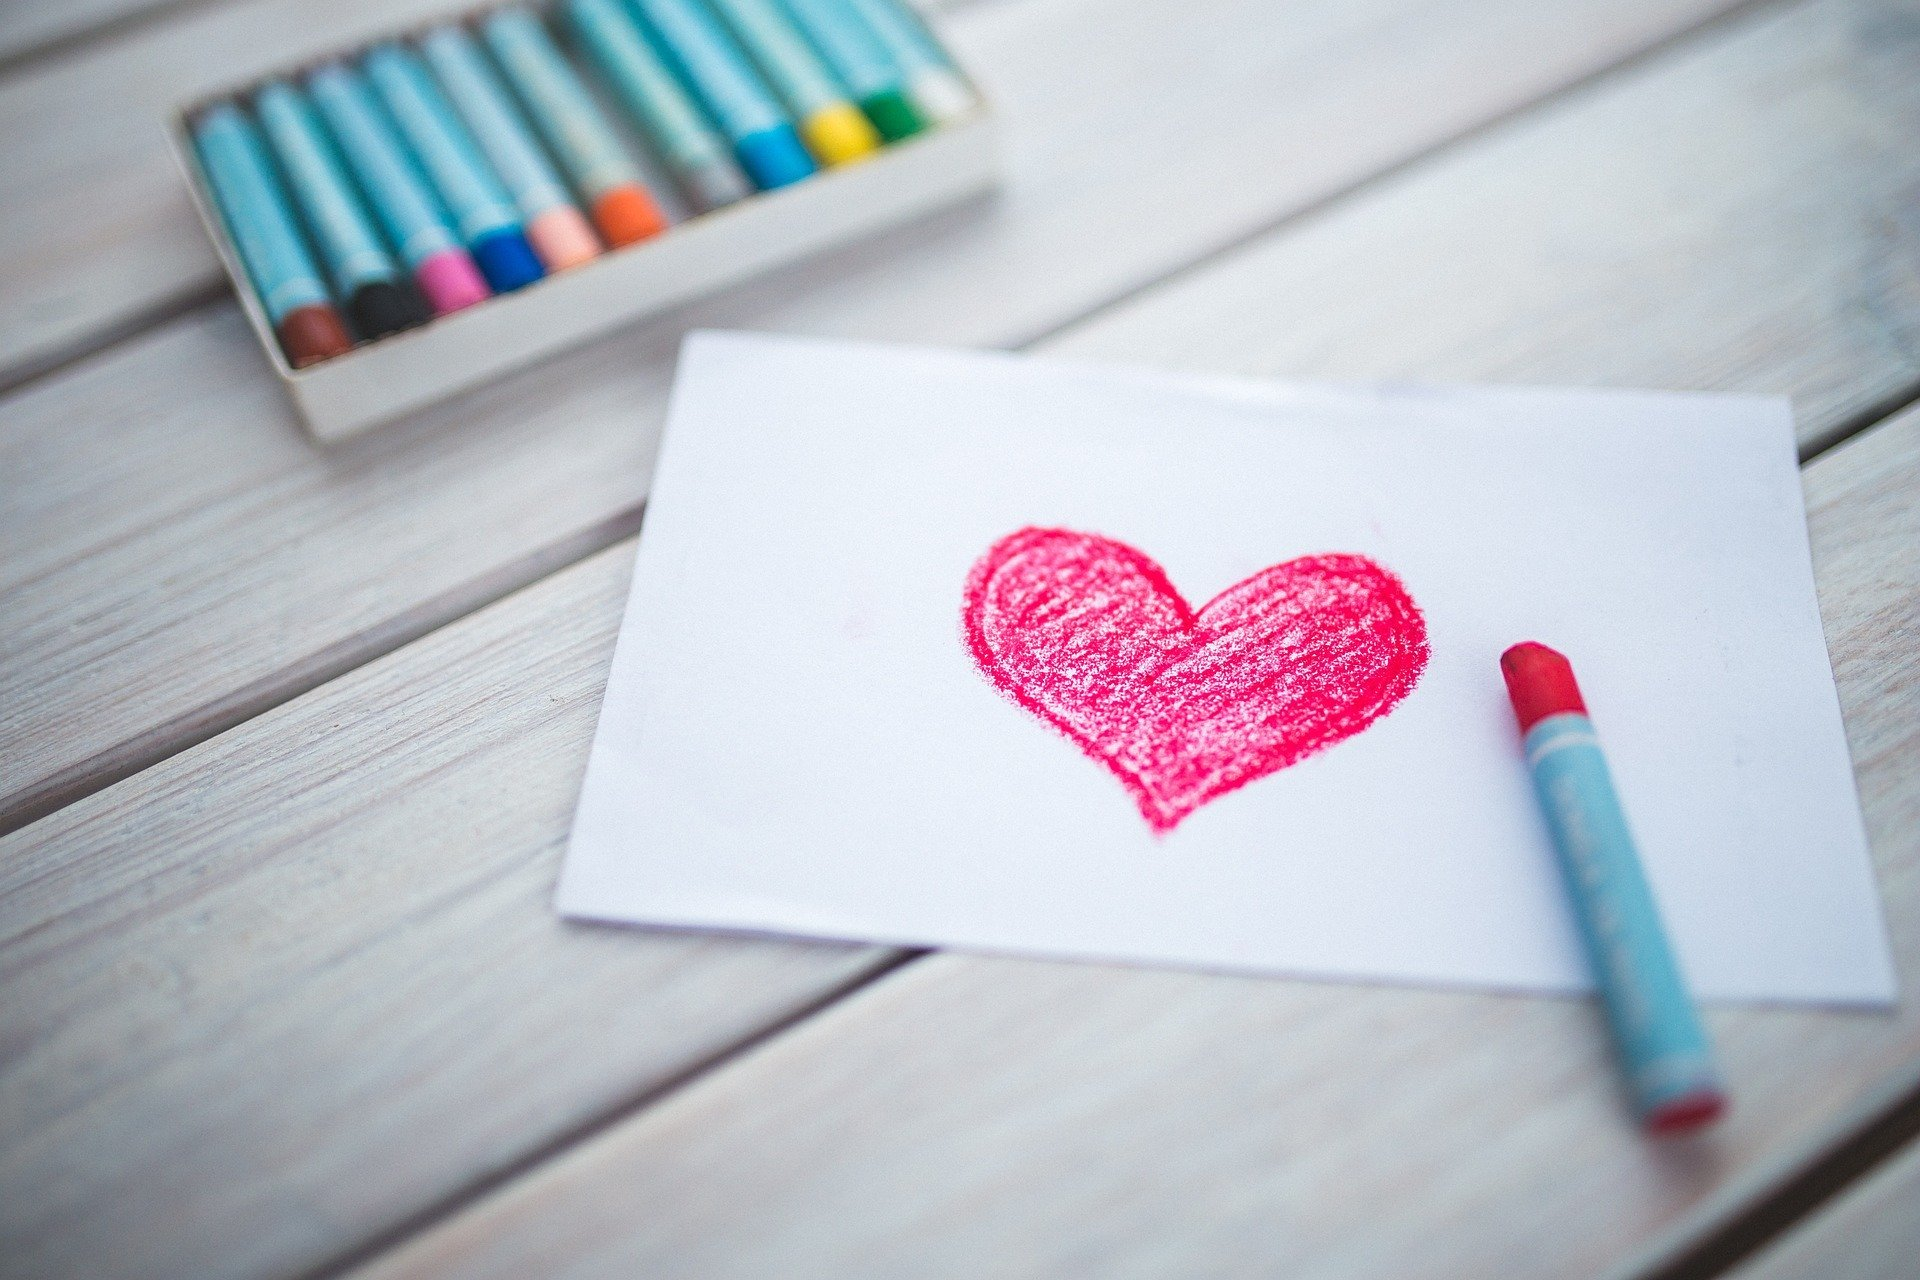 Heart colored with crayon